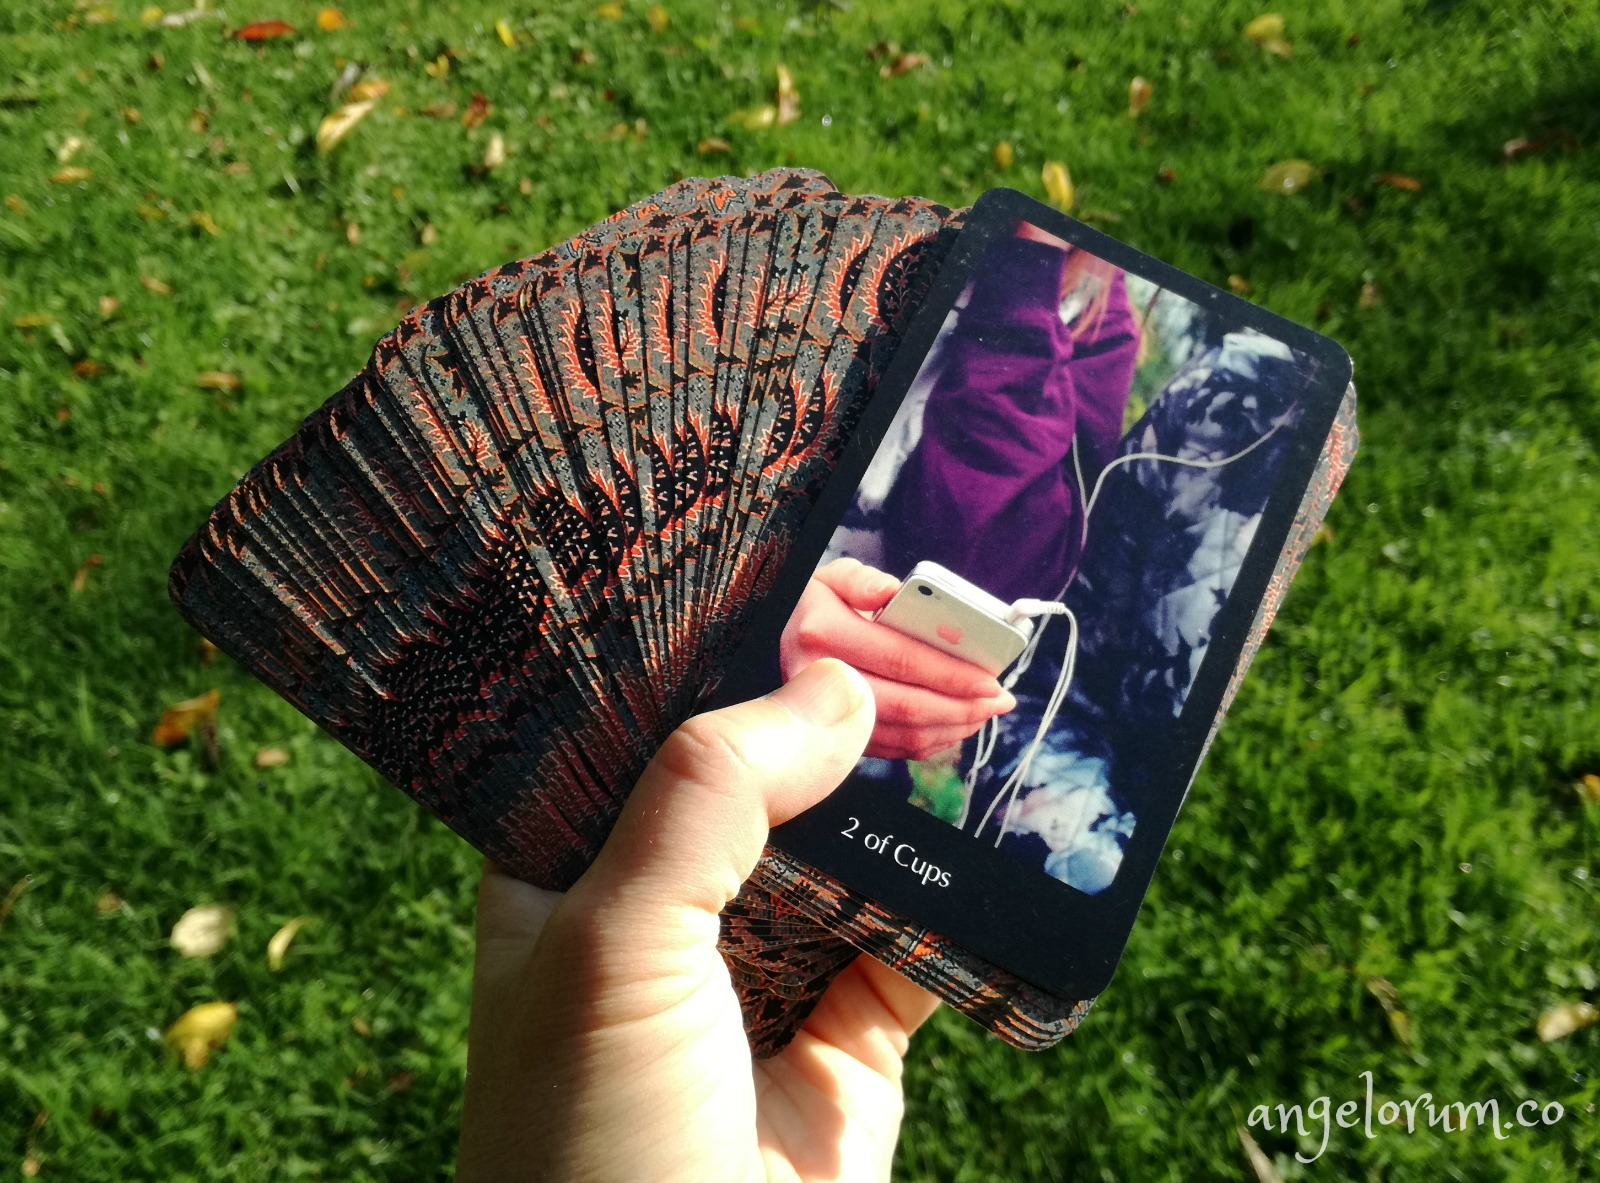 Tarot Card Meanings for a General Daily Draw